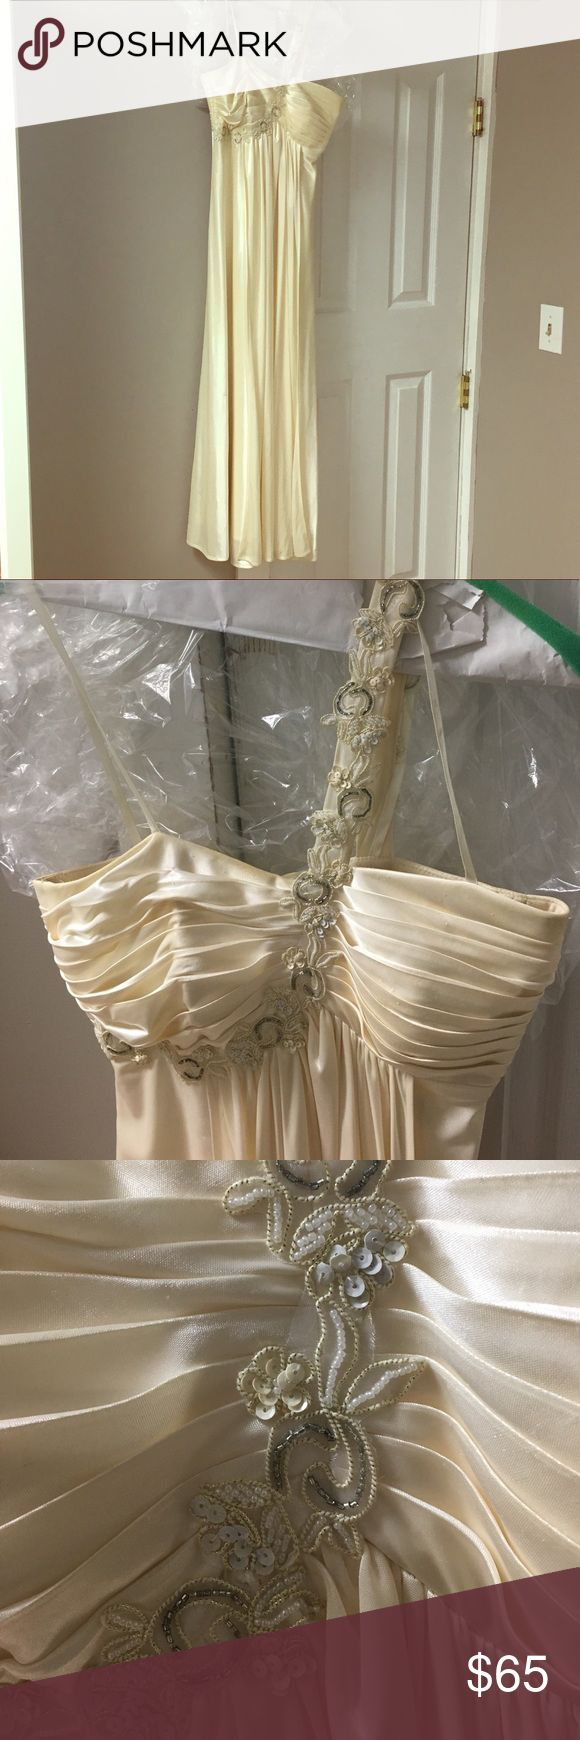 Formal/Prom Dress Cream formal dress worn once with few impurities Morgan & Co. Dresses Prom